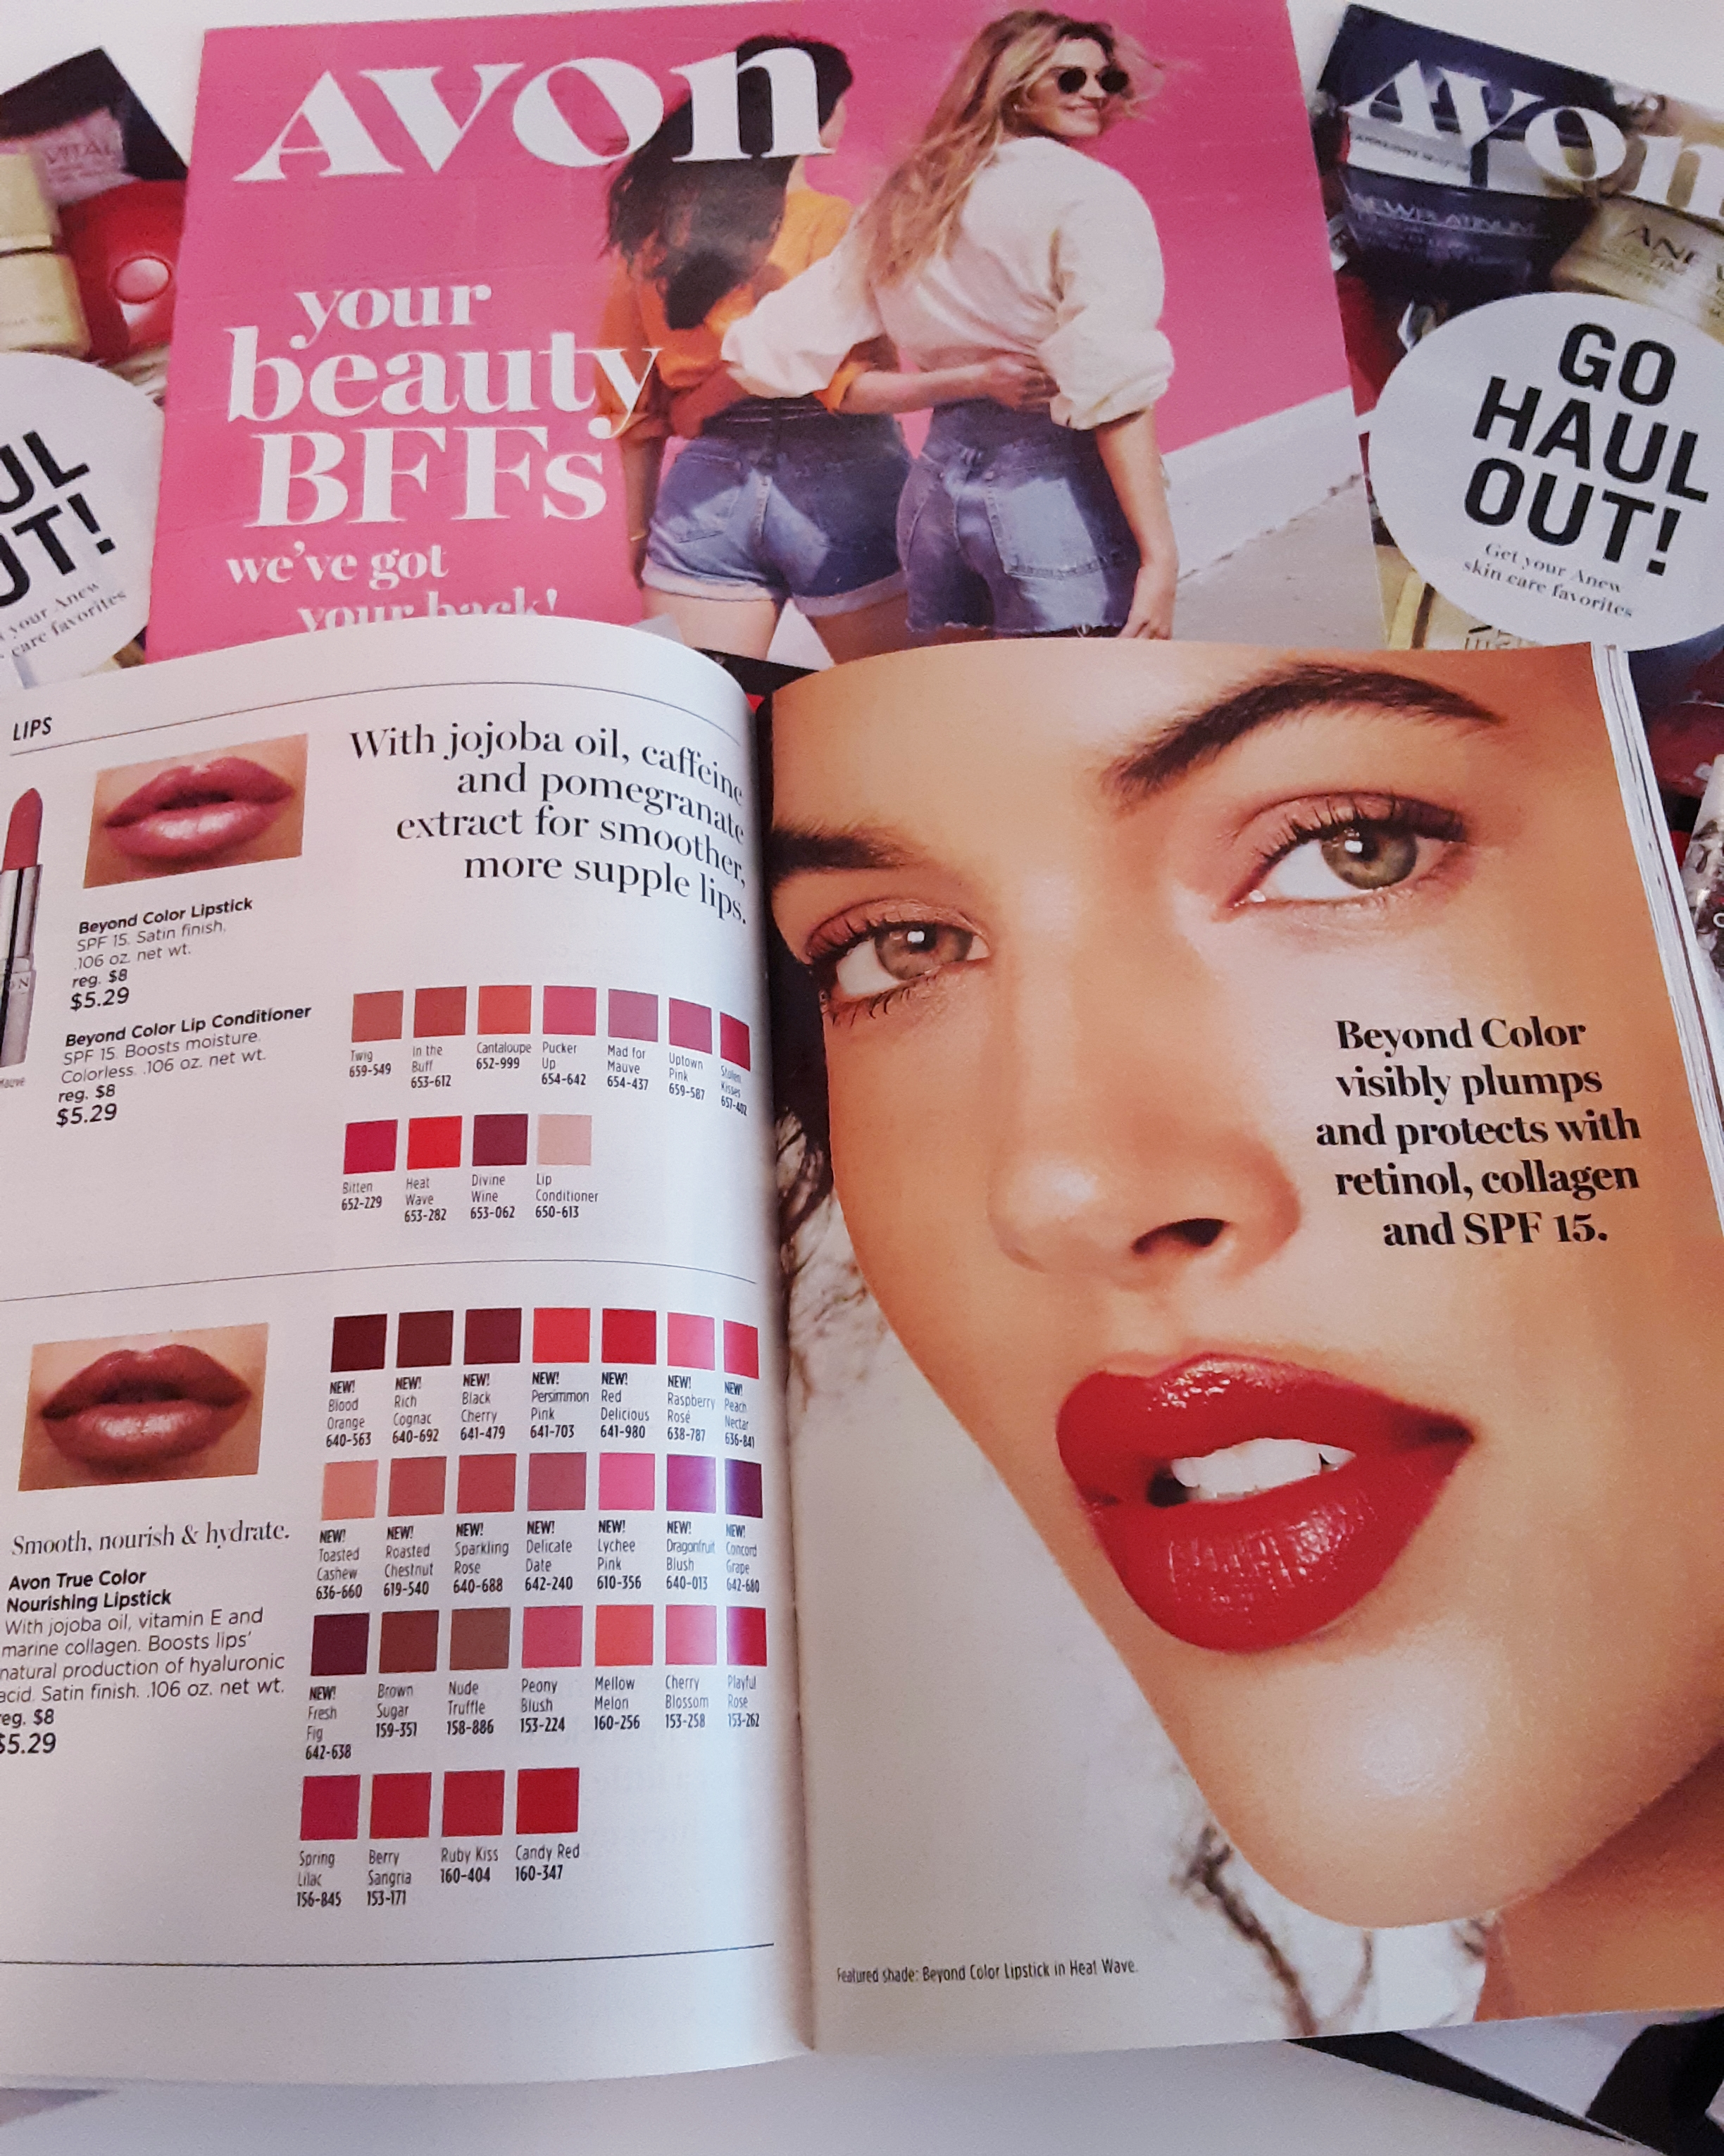 Beyond Color Lipstick from Avon